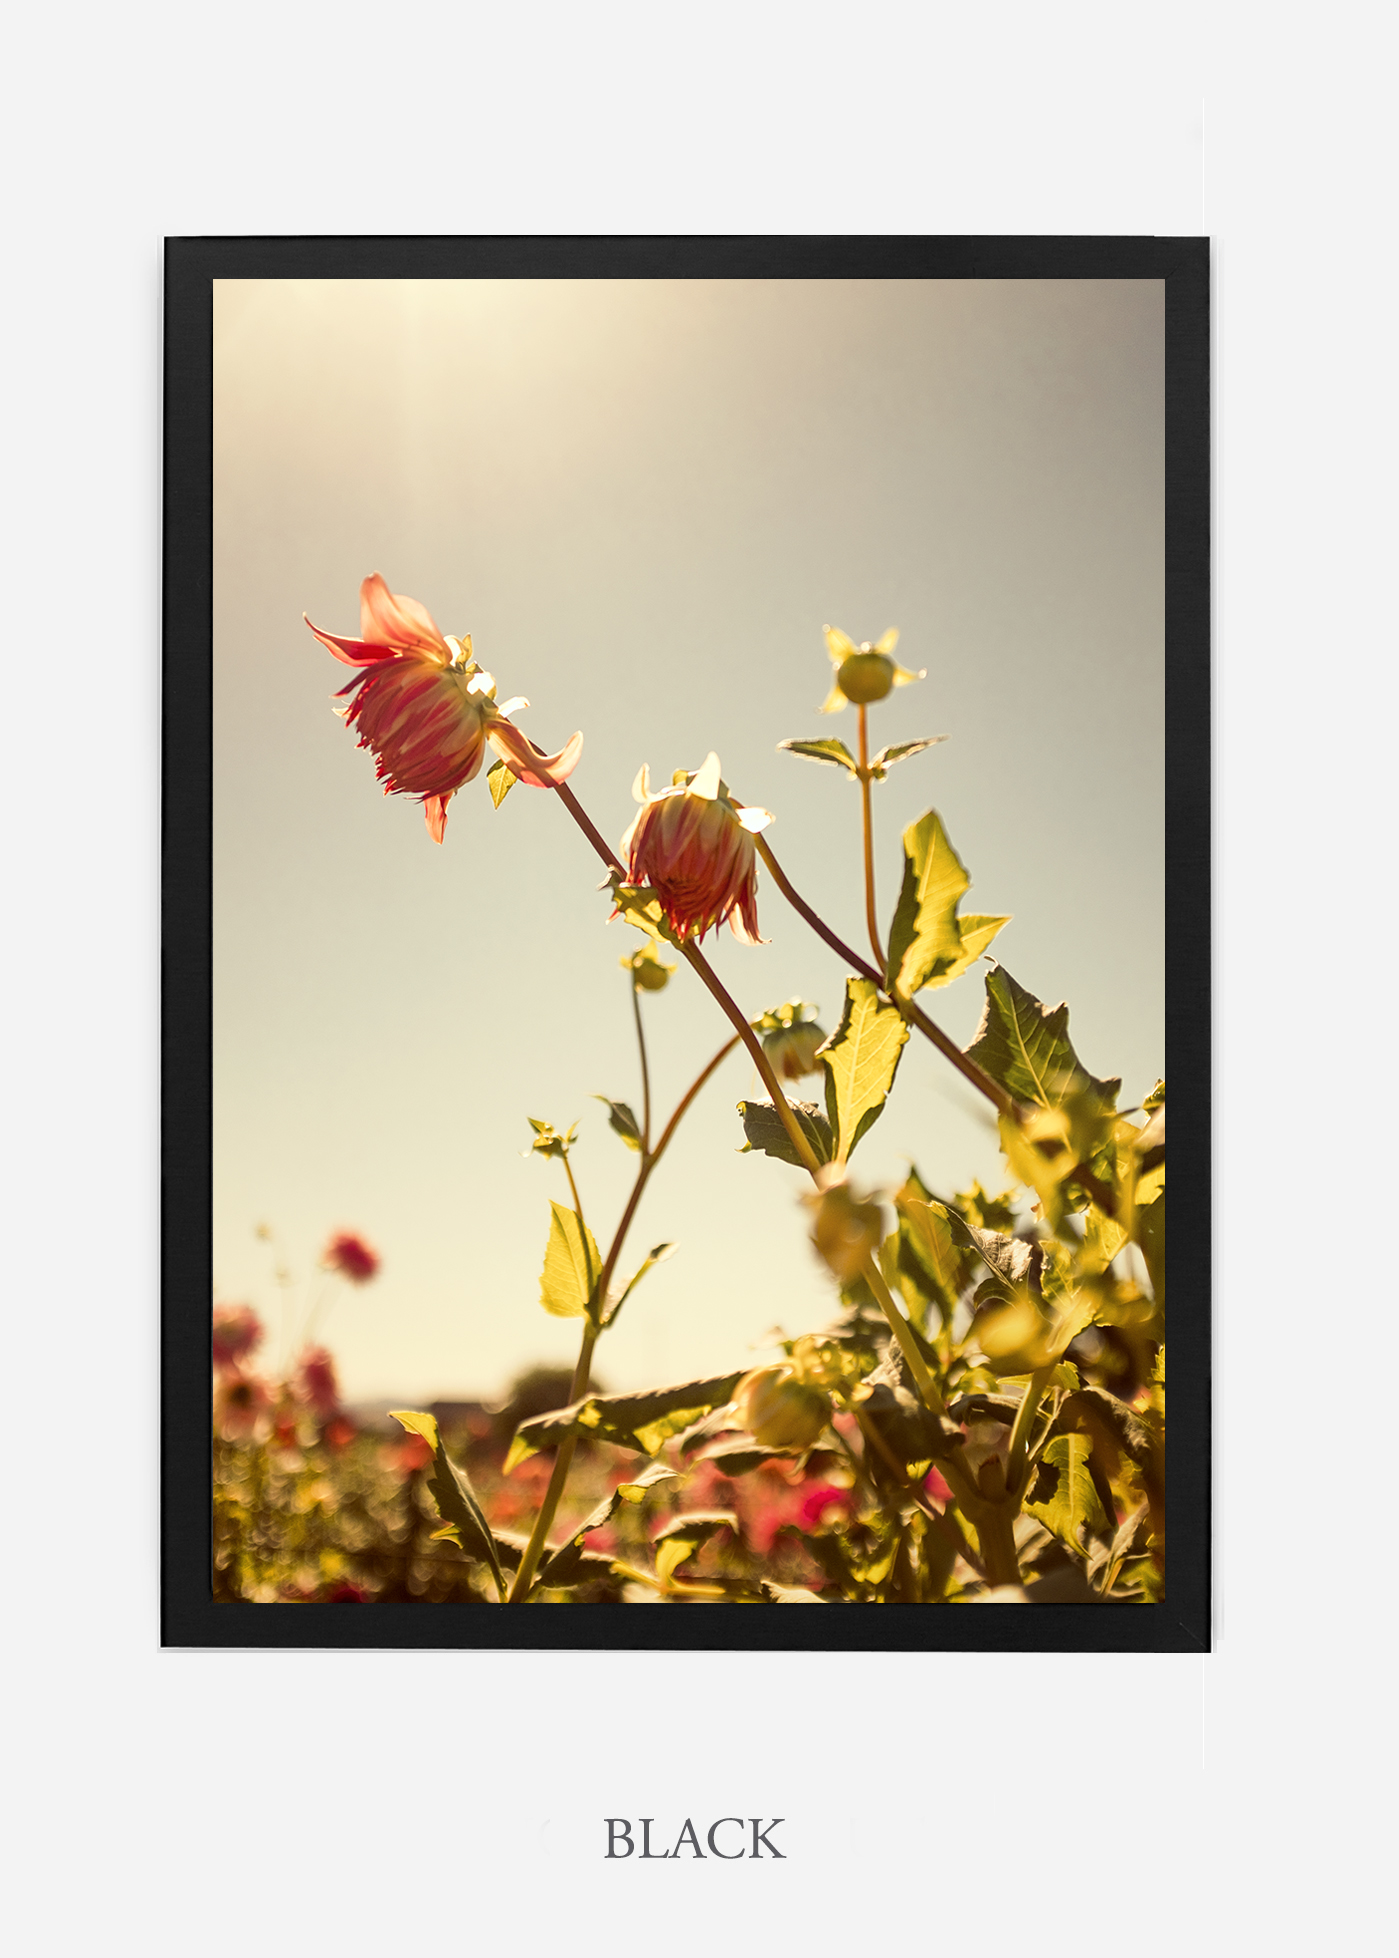 flora-no-10-black-custom-frame-dahlia-print-floral-print-floral-art-wilder-california-botanical-prints-home-decor-design-prints-print-shop.jpg